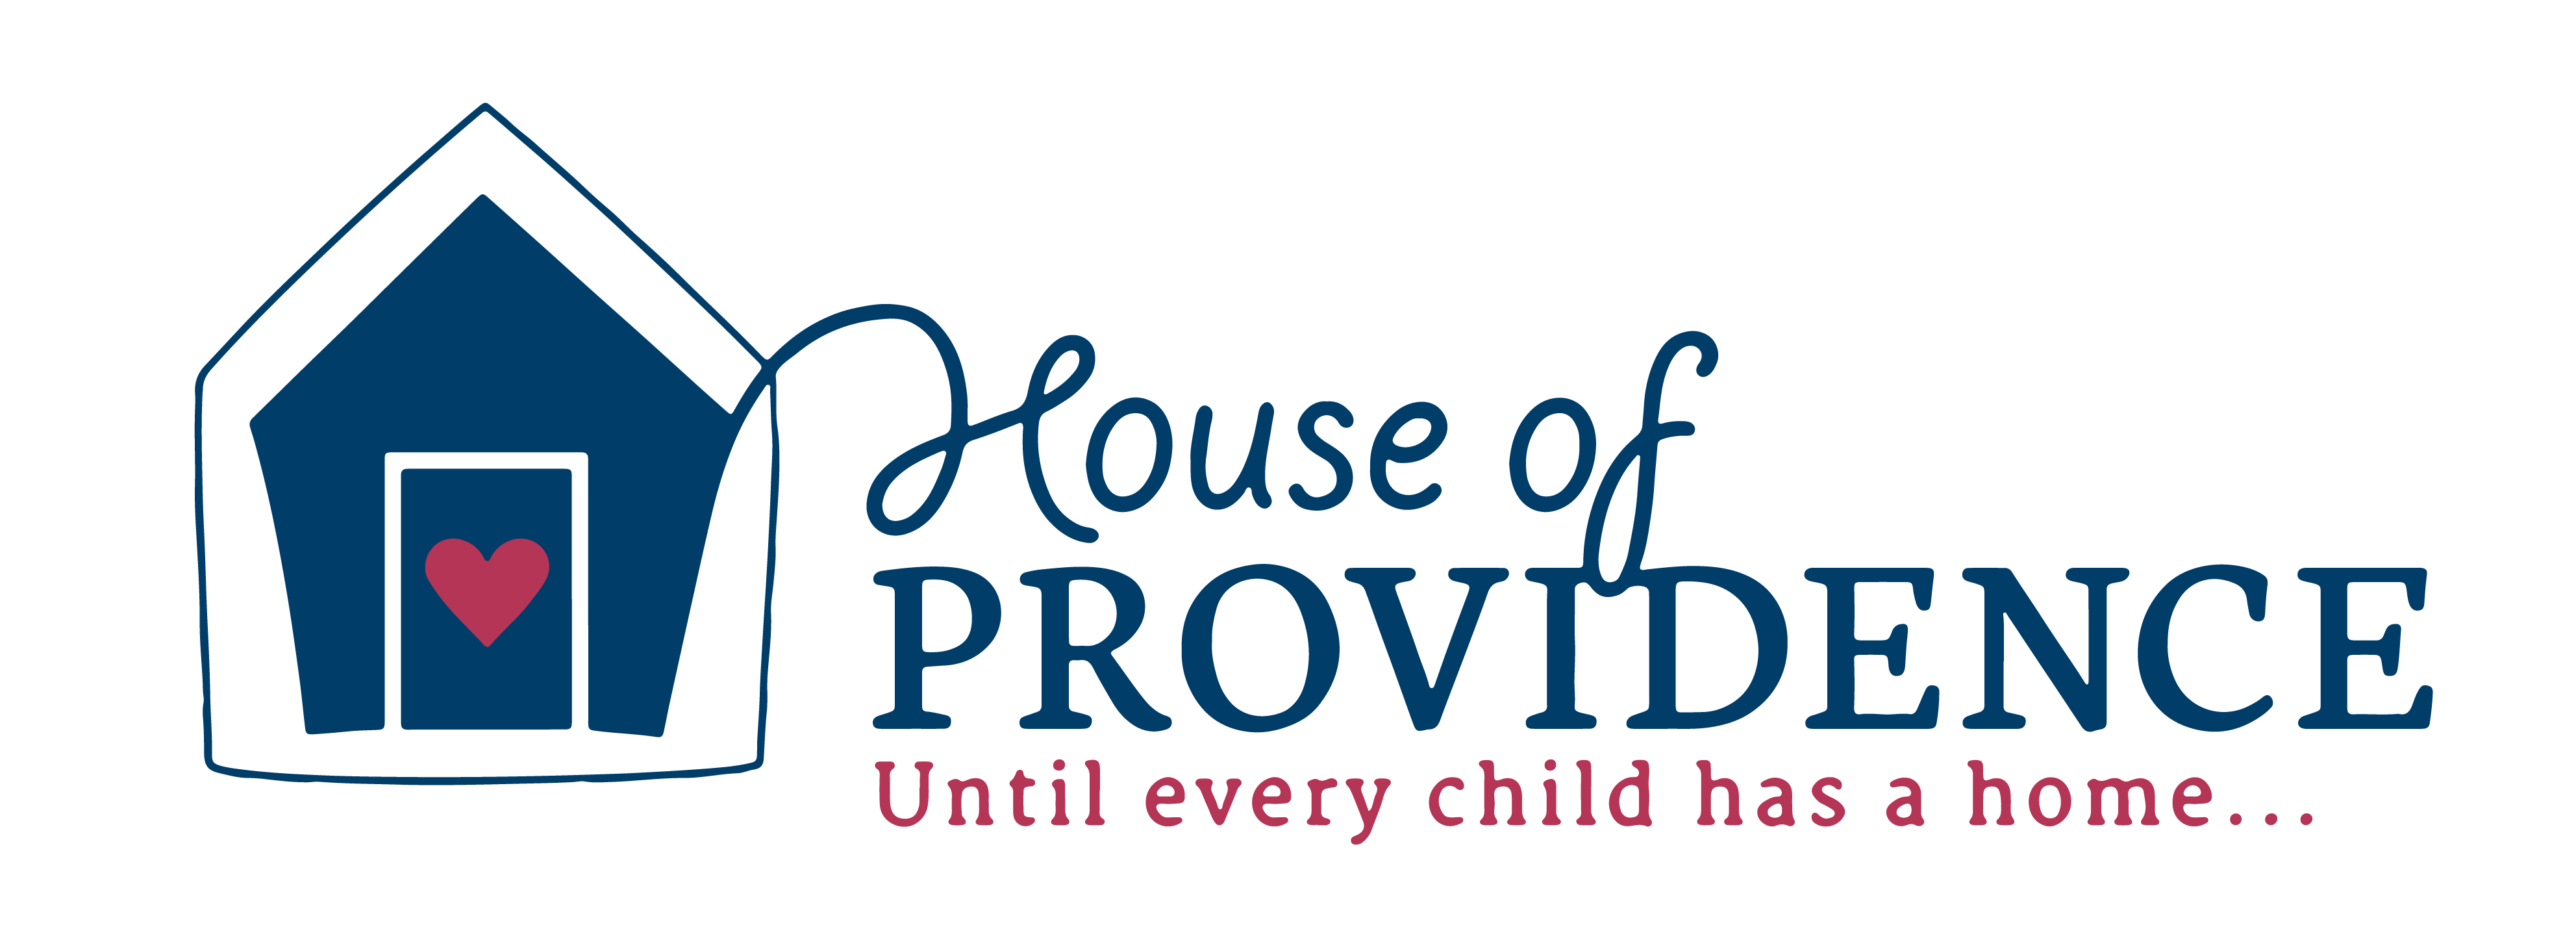 House of Providence Foster Home Michigan